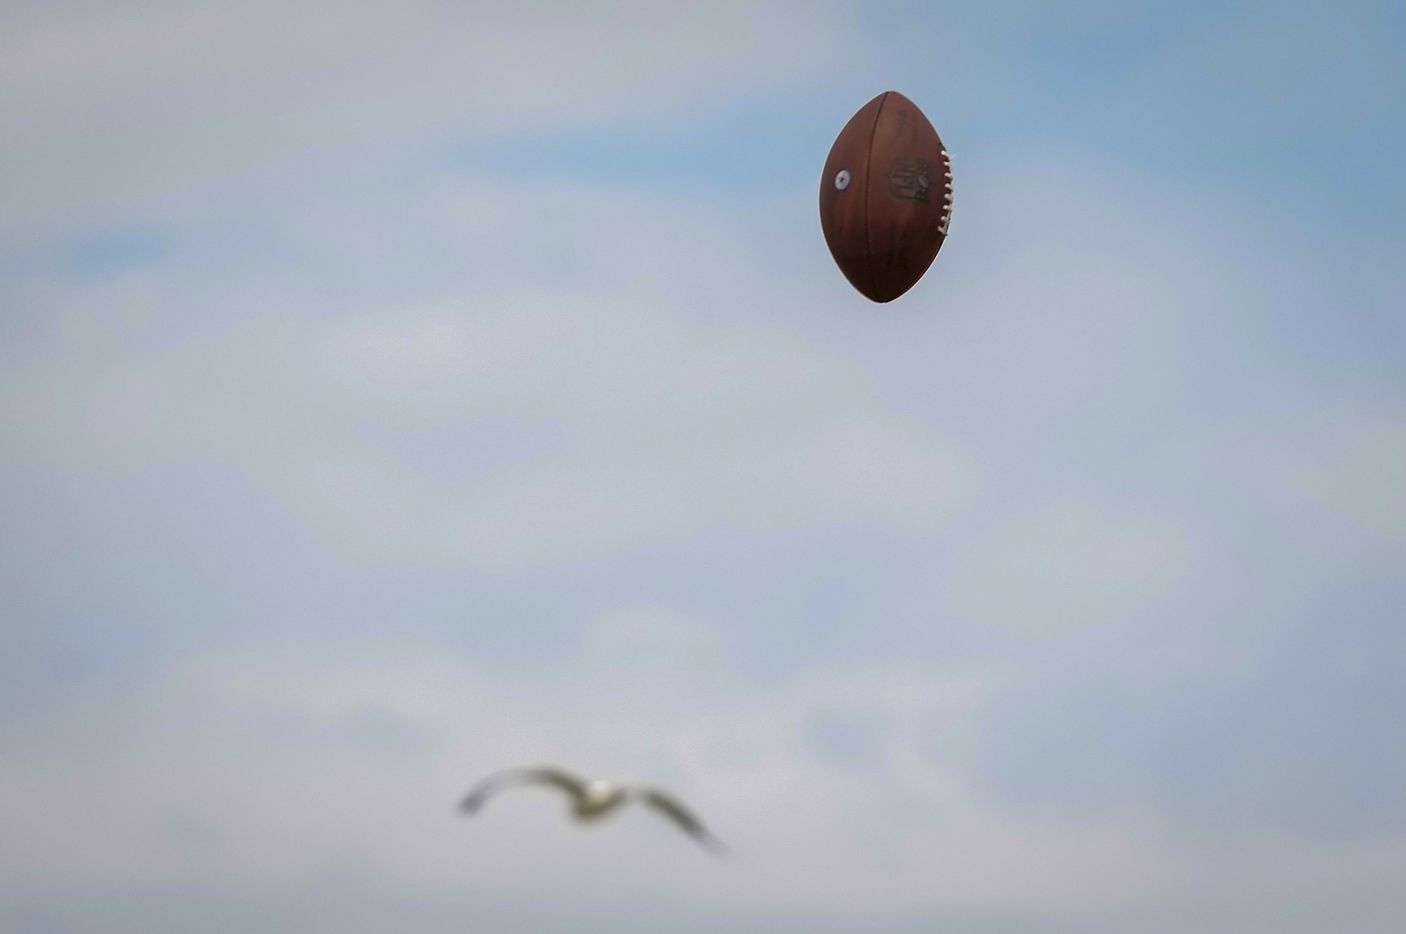 A ball sent high in the air on a punt return drill shares the sky with a seagull during a practice at Dallas Cowboys training camp on Wednesday, Aug. 11, 2021, in Oxnard, Calif.